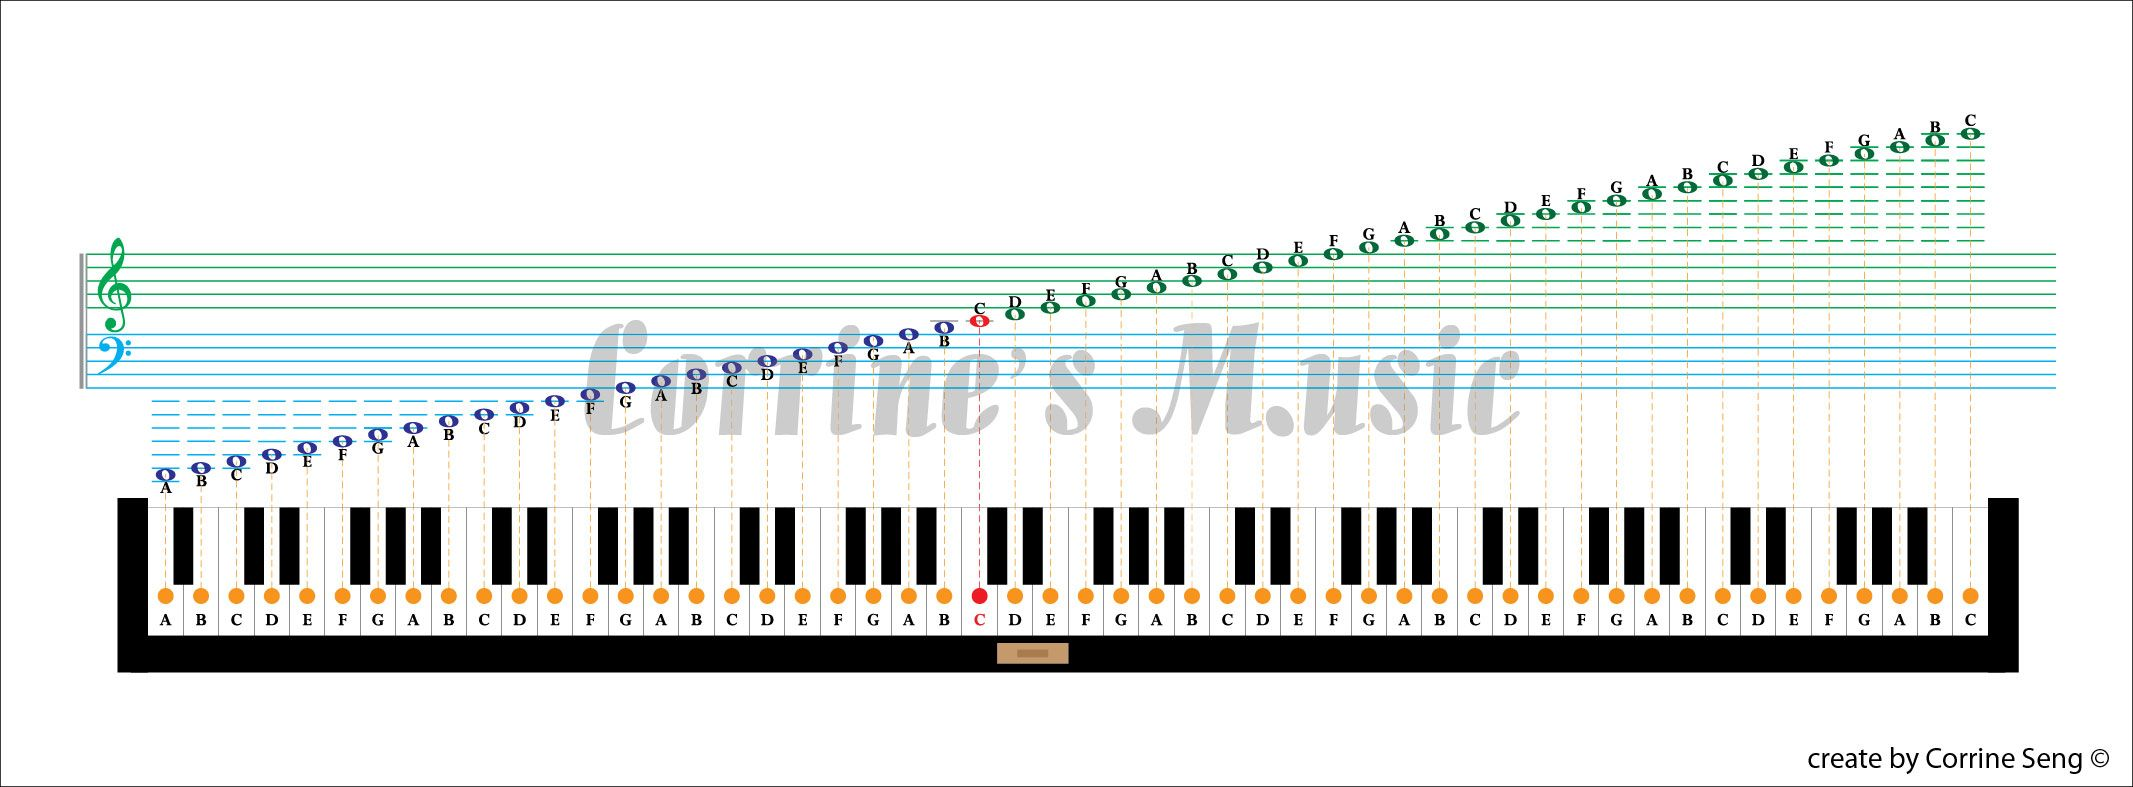 Complete  Keys Piano Notes Chart  Lds     Key